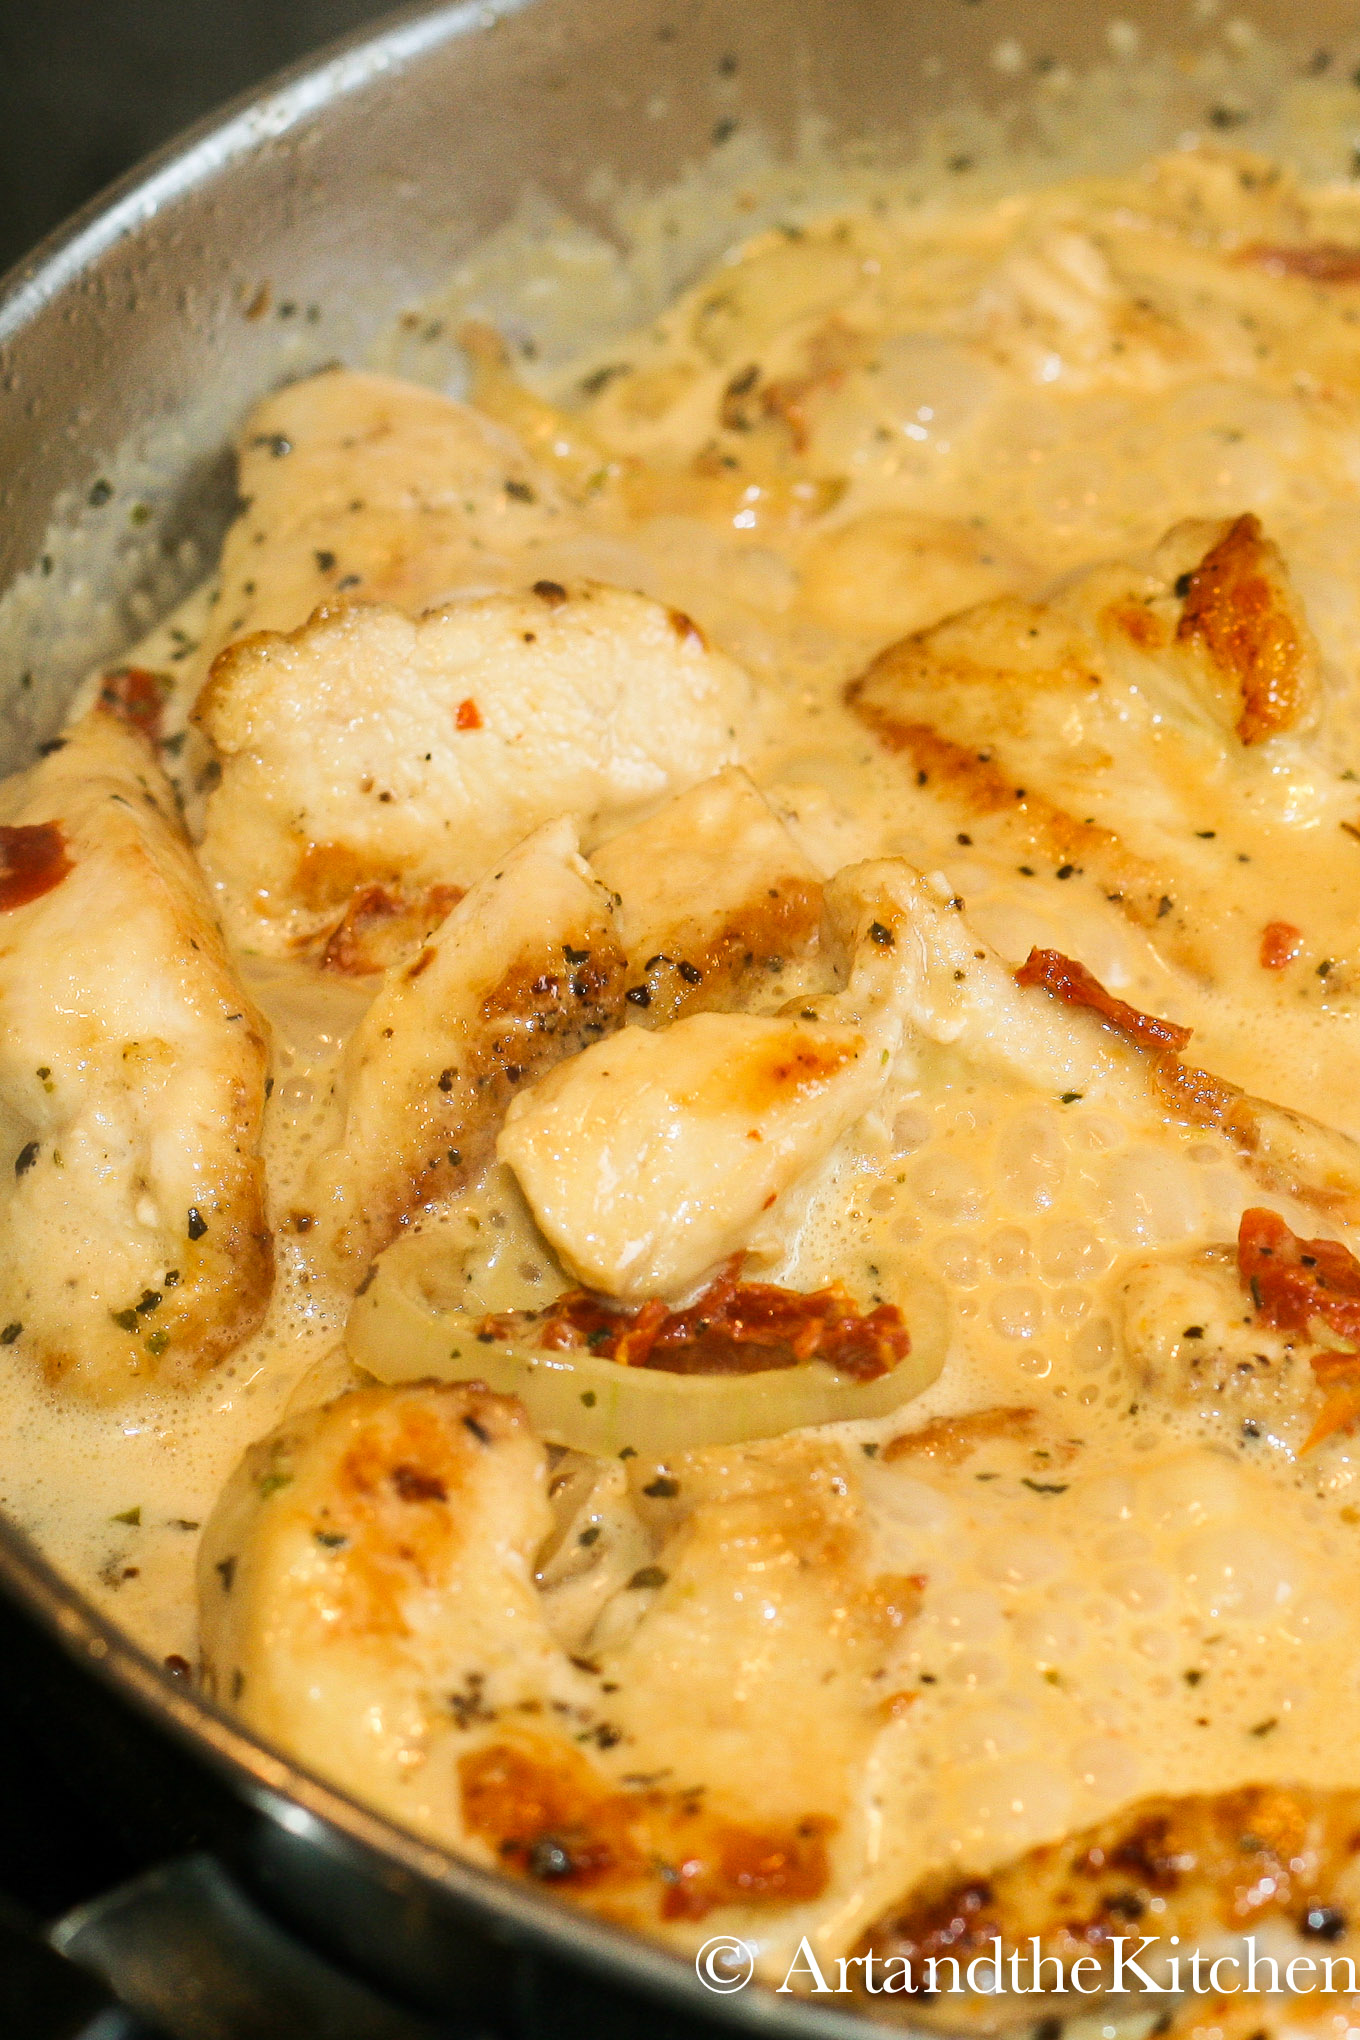 chicken with shallots and sun-dried tomatoes in a creamy sauce simmering in a stainless steel skillet.